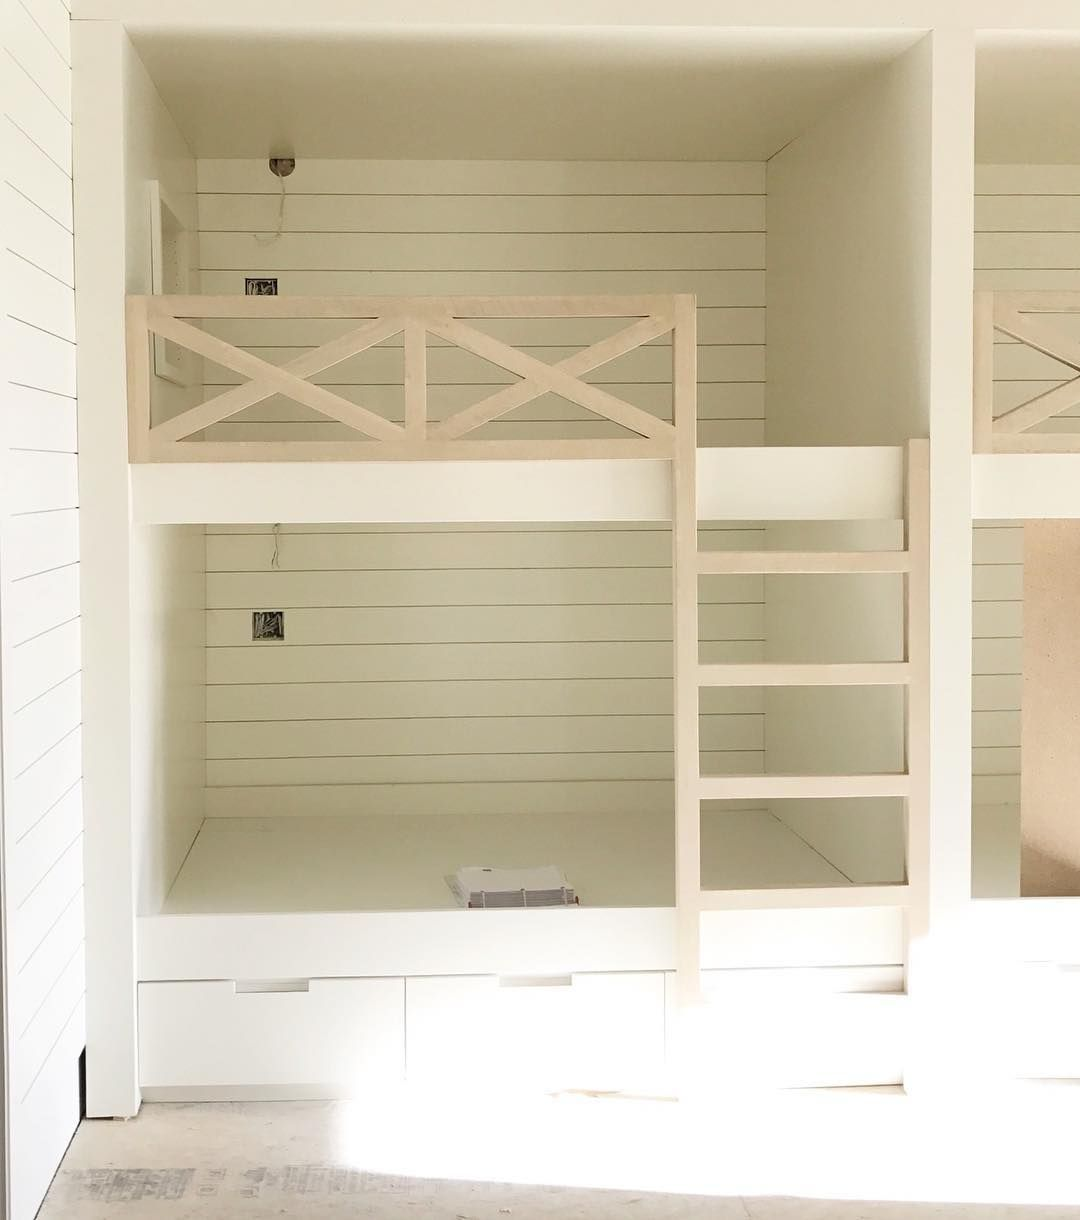 Corner loft bed ideas  Pin by Jaime West on Our New Home  Pinterest  Bunk rooms Built in